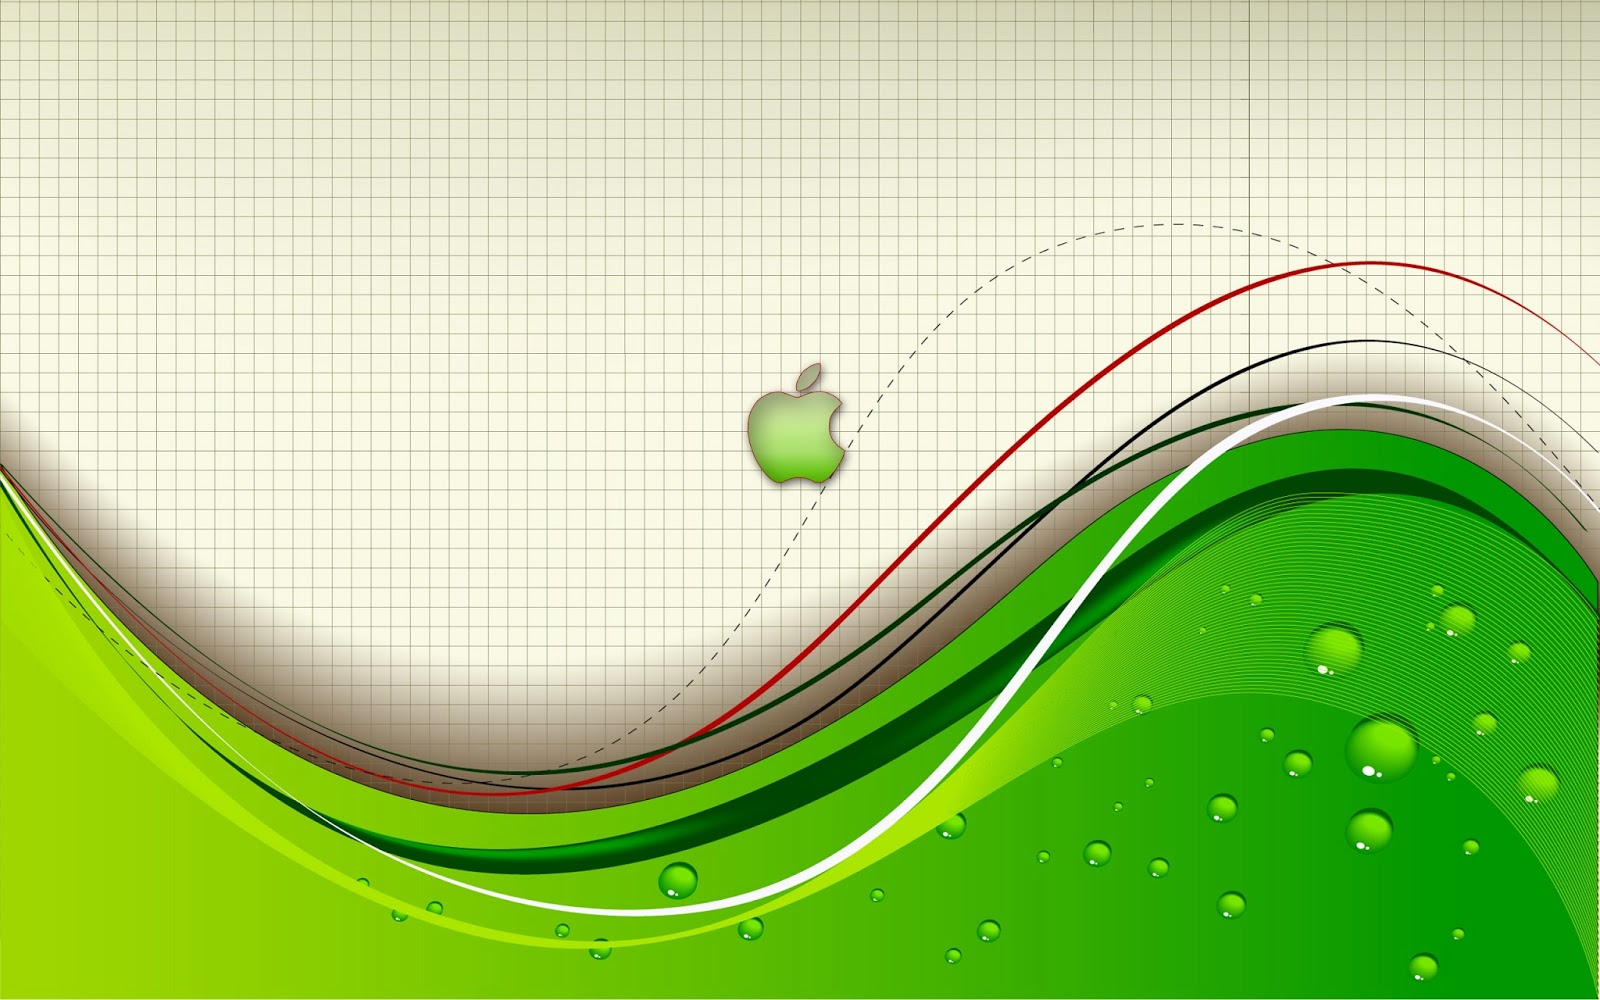 Hd Wallppaers Apple Wallpaper Hd 1080p